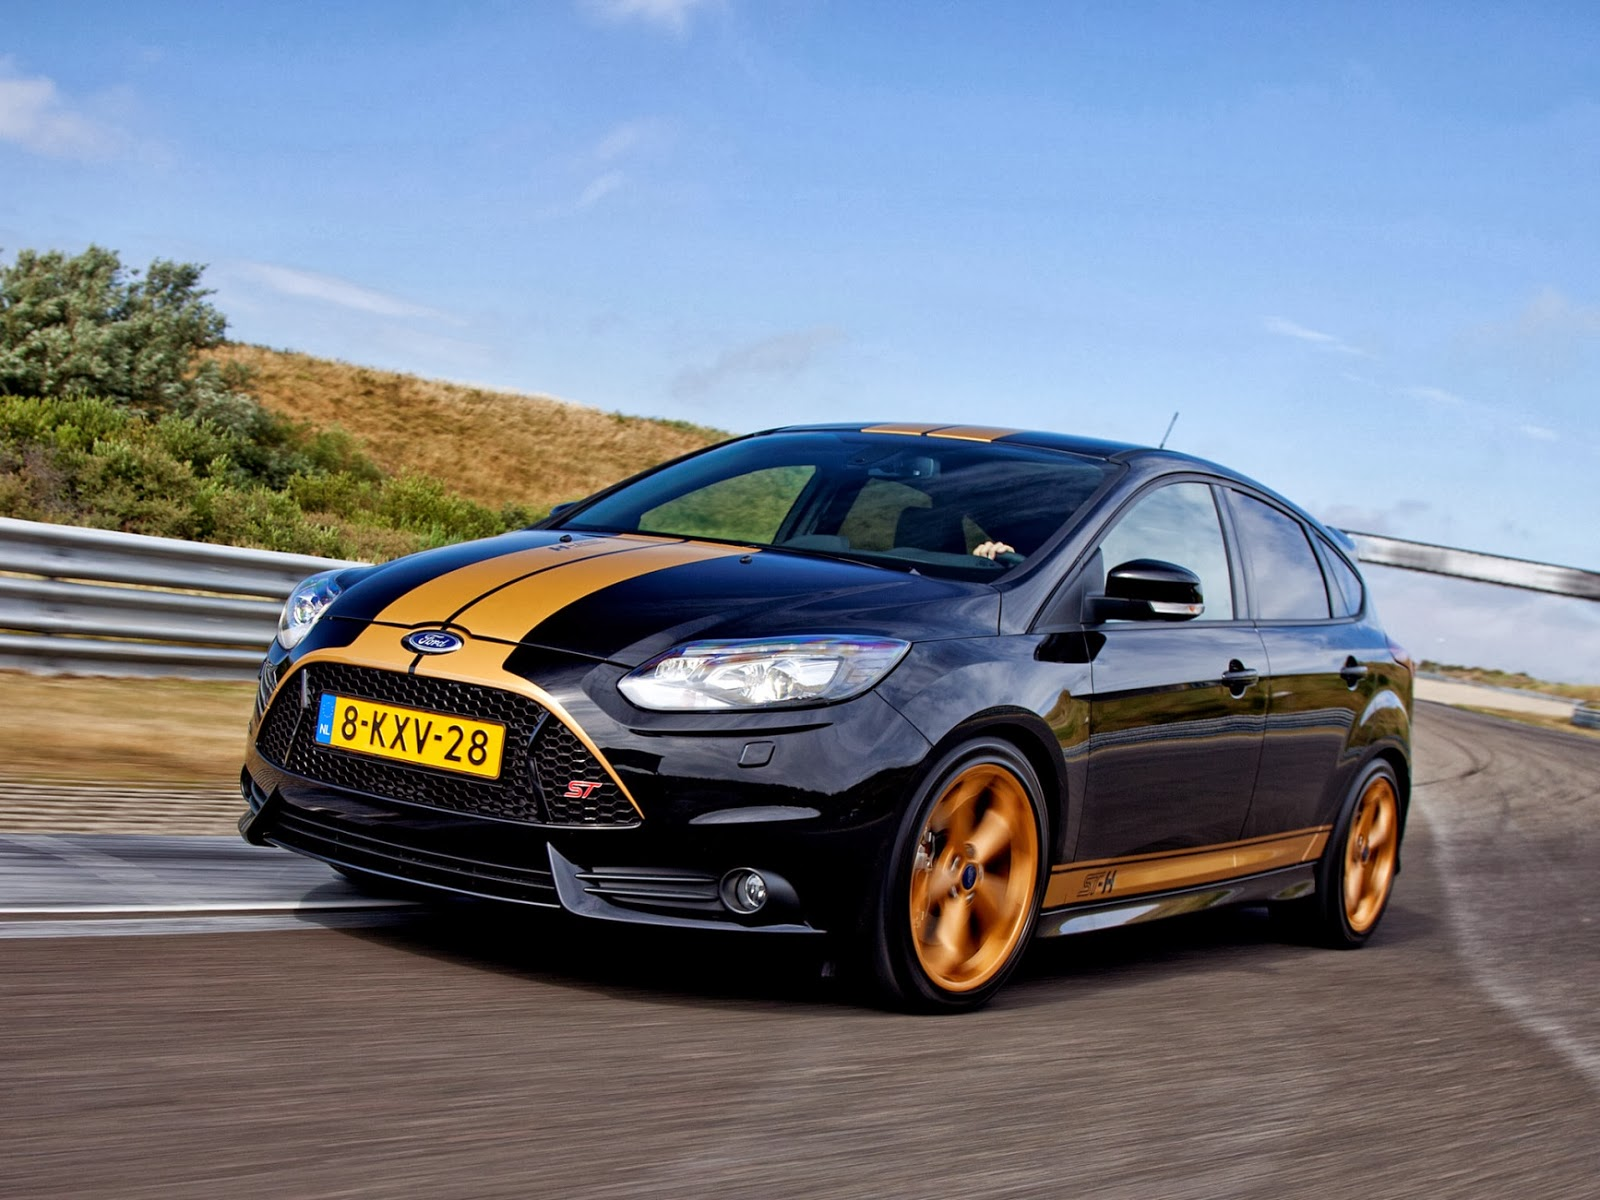 all tuning cars nz 2013 ford focus st h. Black Bedroom Furniture Sets. Home Design Ideas